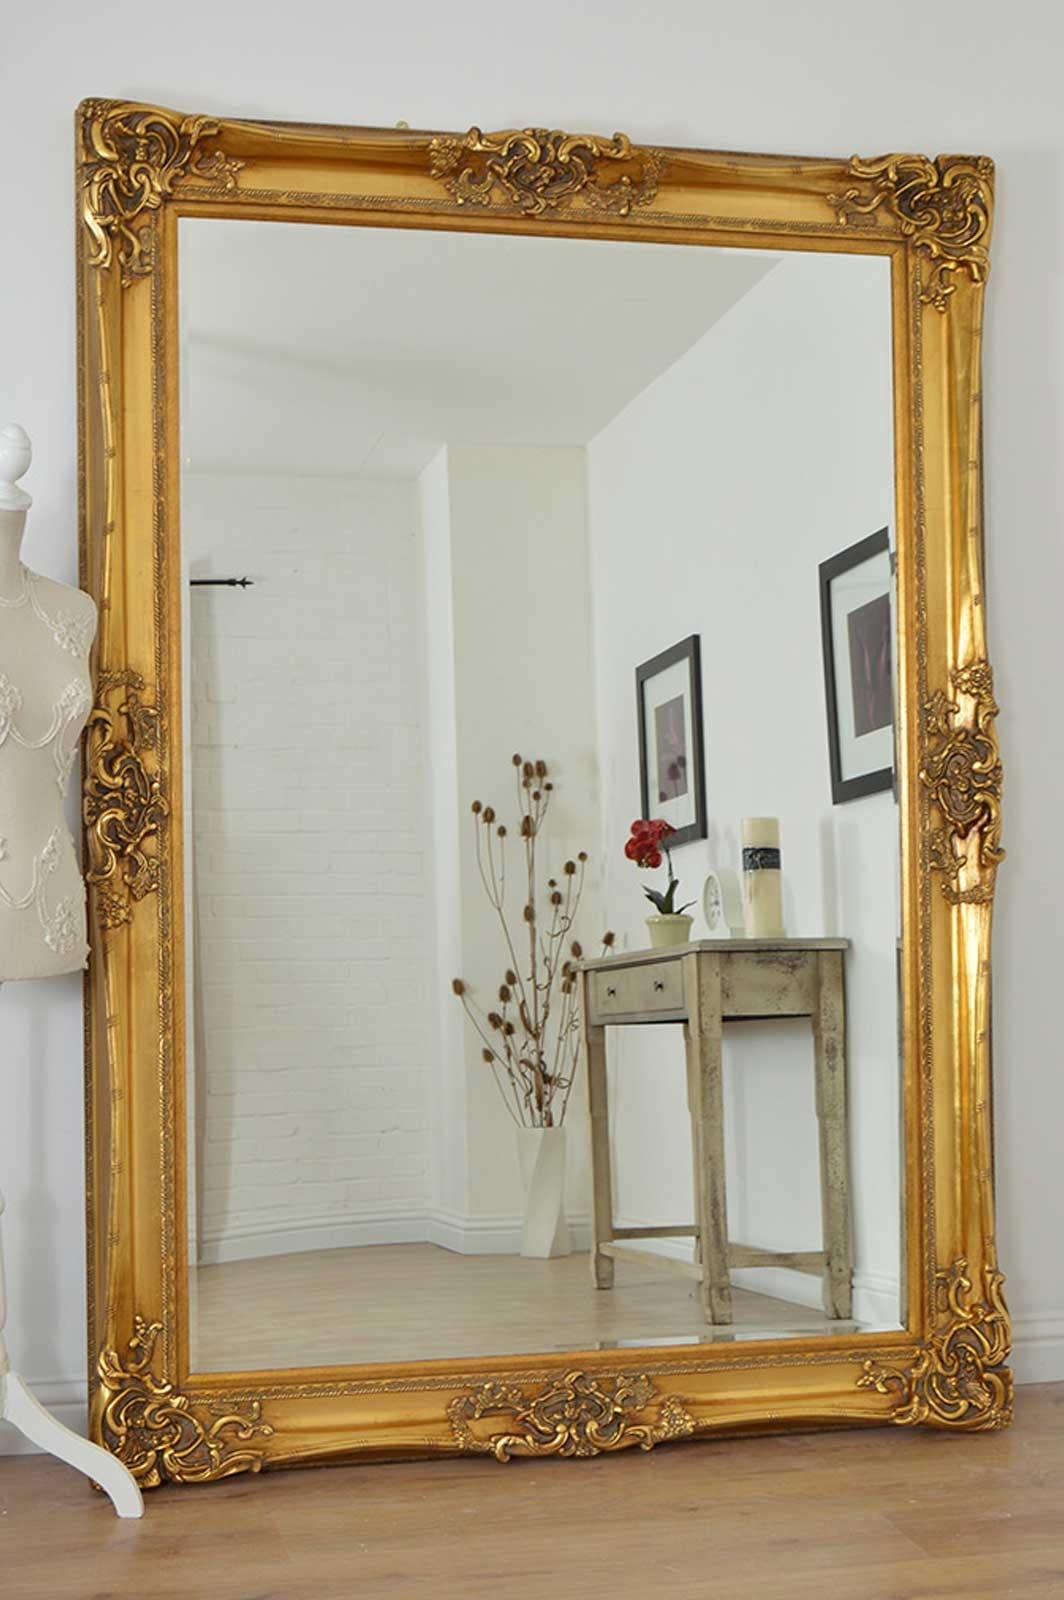 Large Gold Very Ornate Antique Design Wall Mirror 7ft X 5ft 213cm Throughout Antique Gold Mirror French (View 7 of 15)